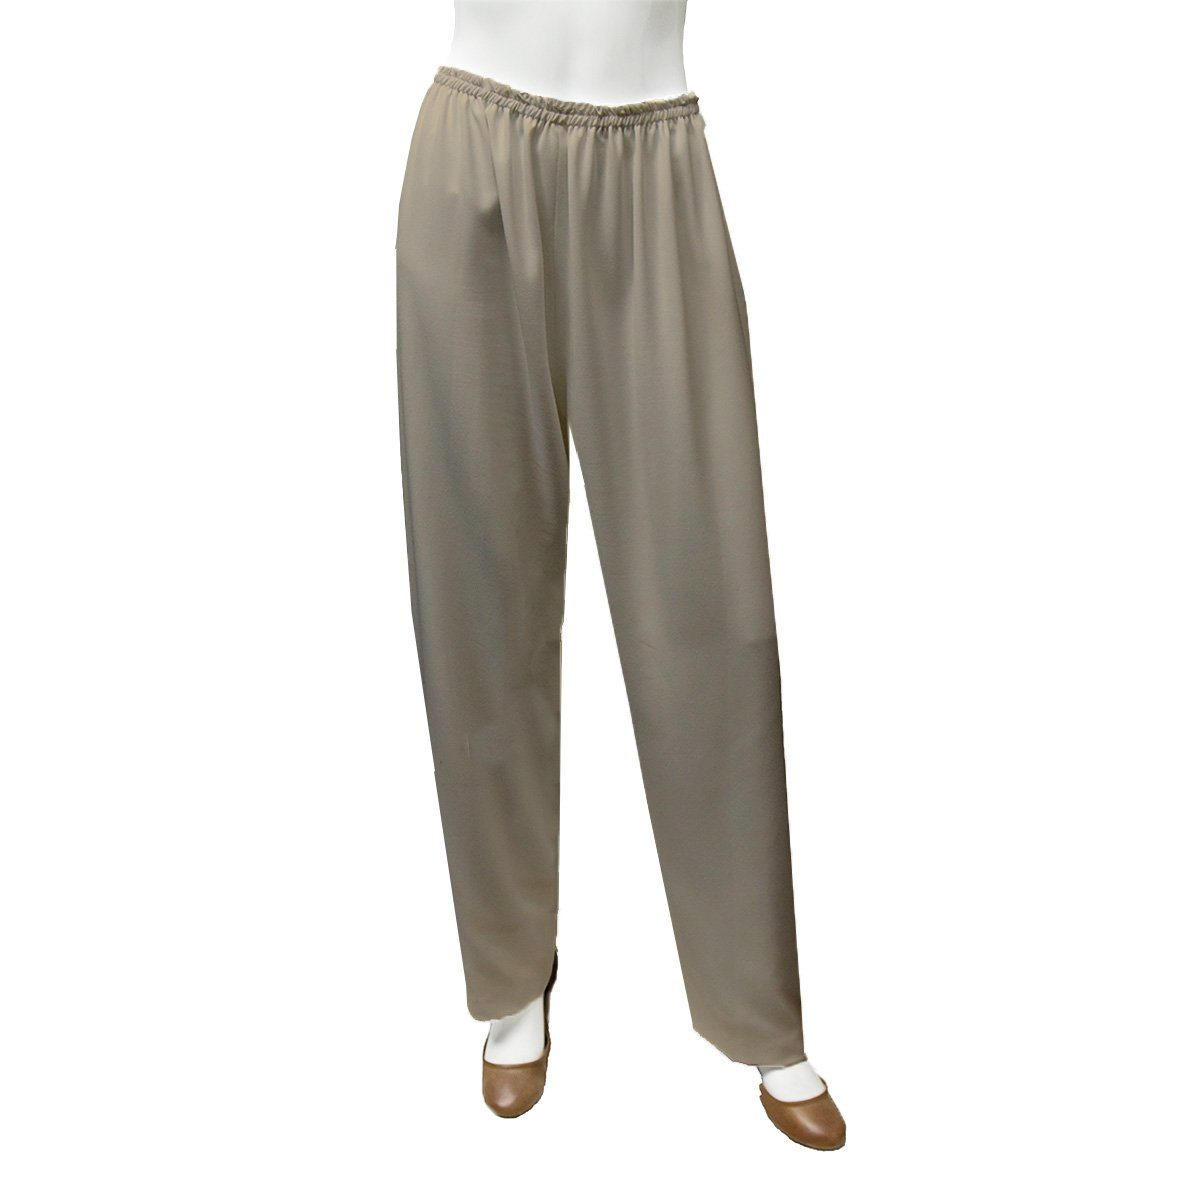 Tan Straight Leg Pants 4, Elastic Waist, XL